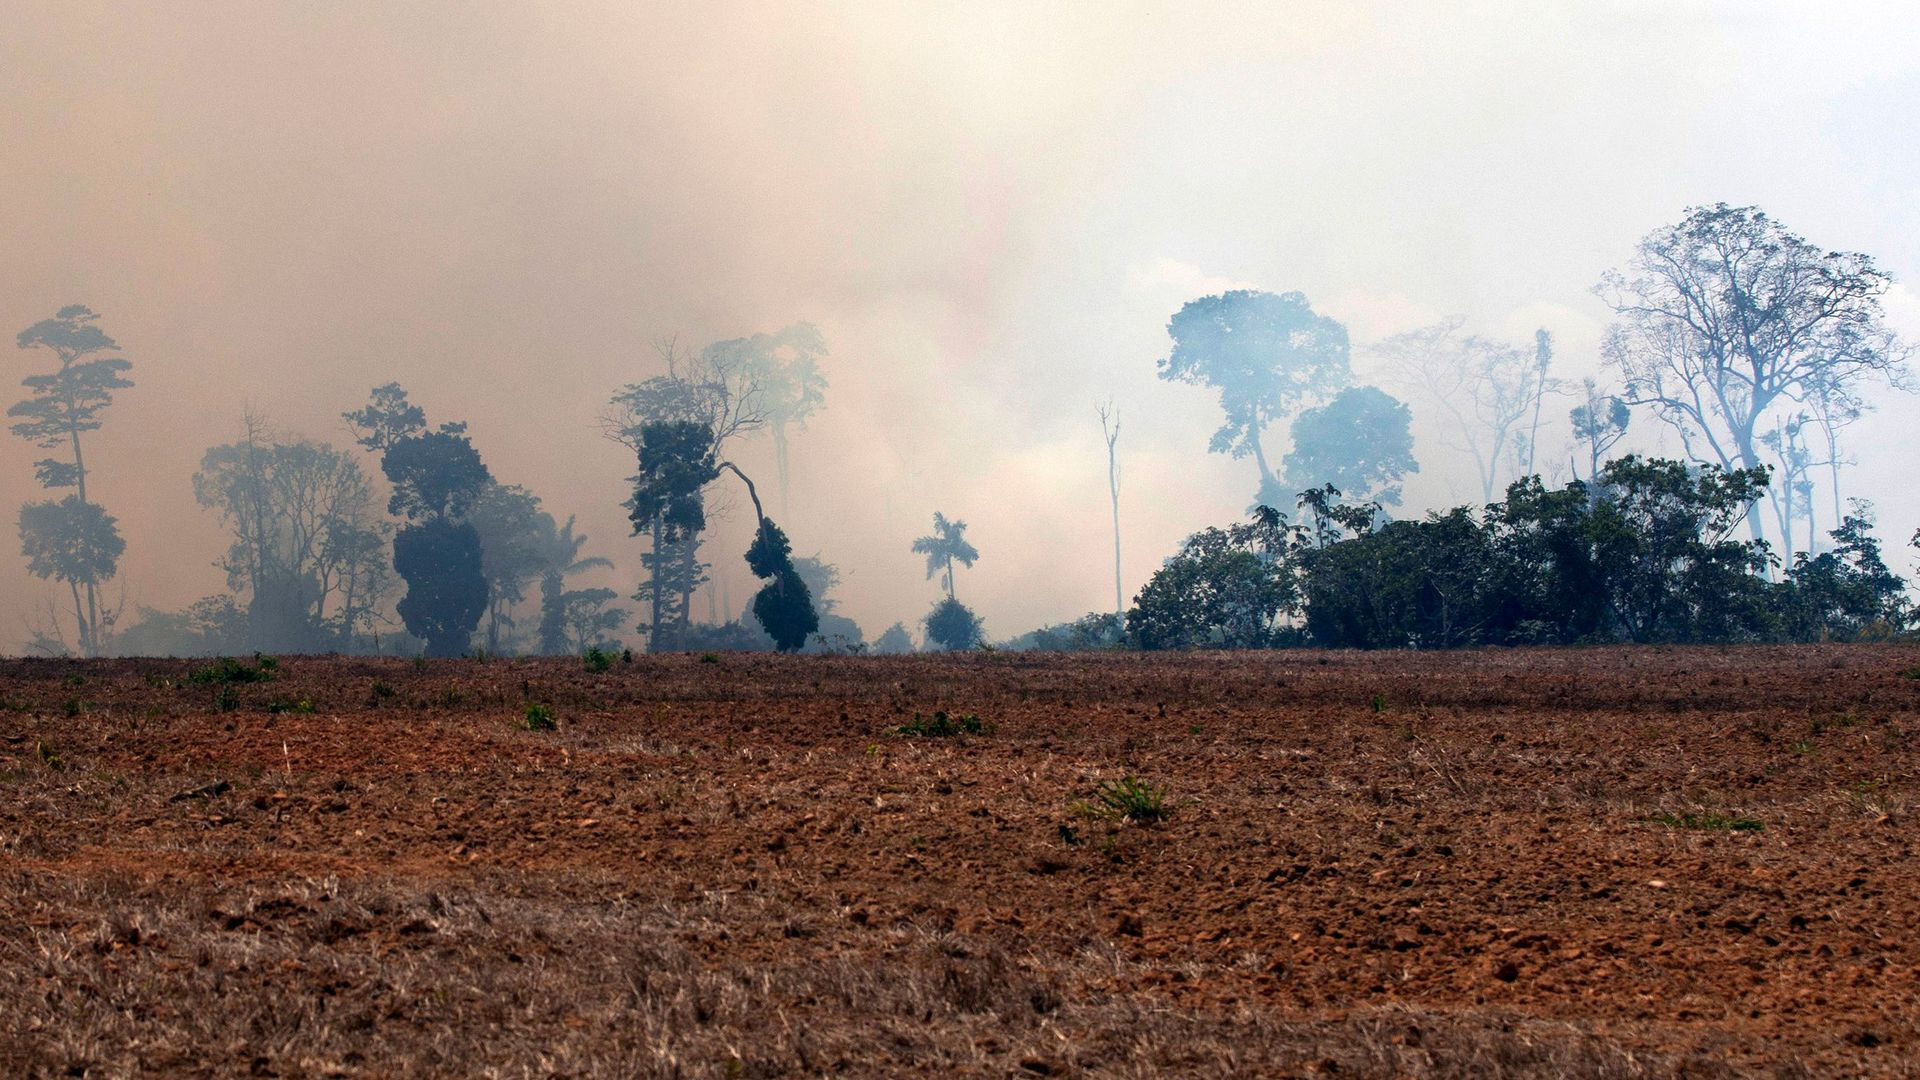 A smoke cloud is seen over a burnt area after a fire in the Amazon rainforest, in Novo Progresso, Para state, Brazil, on August 24, 2019.